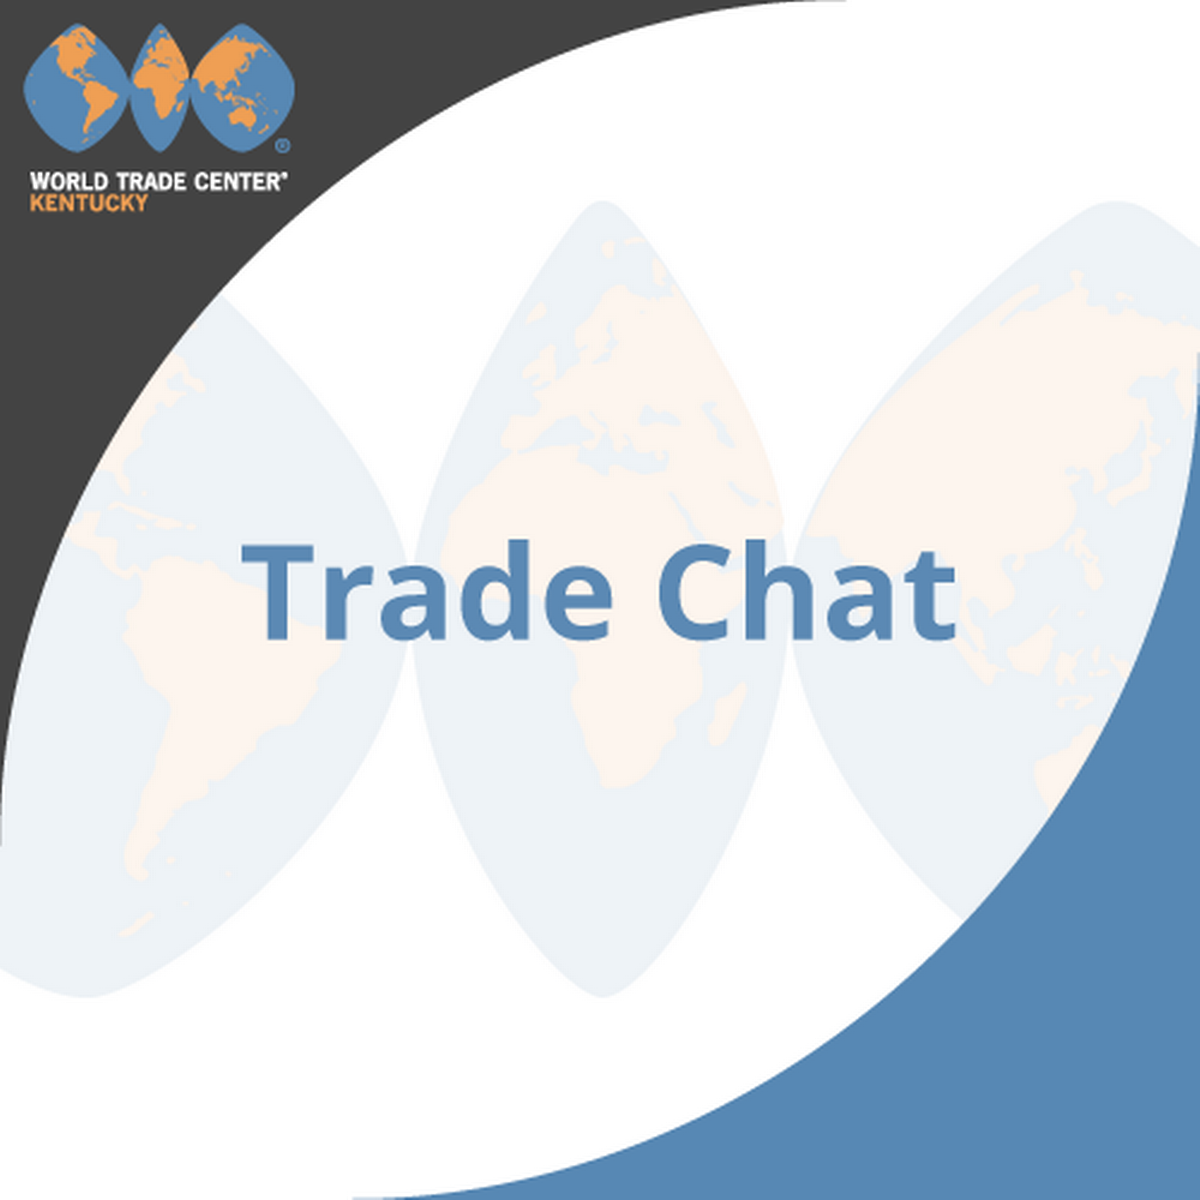 Trade Chat: The fragility of the global supply chain